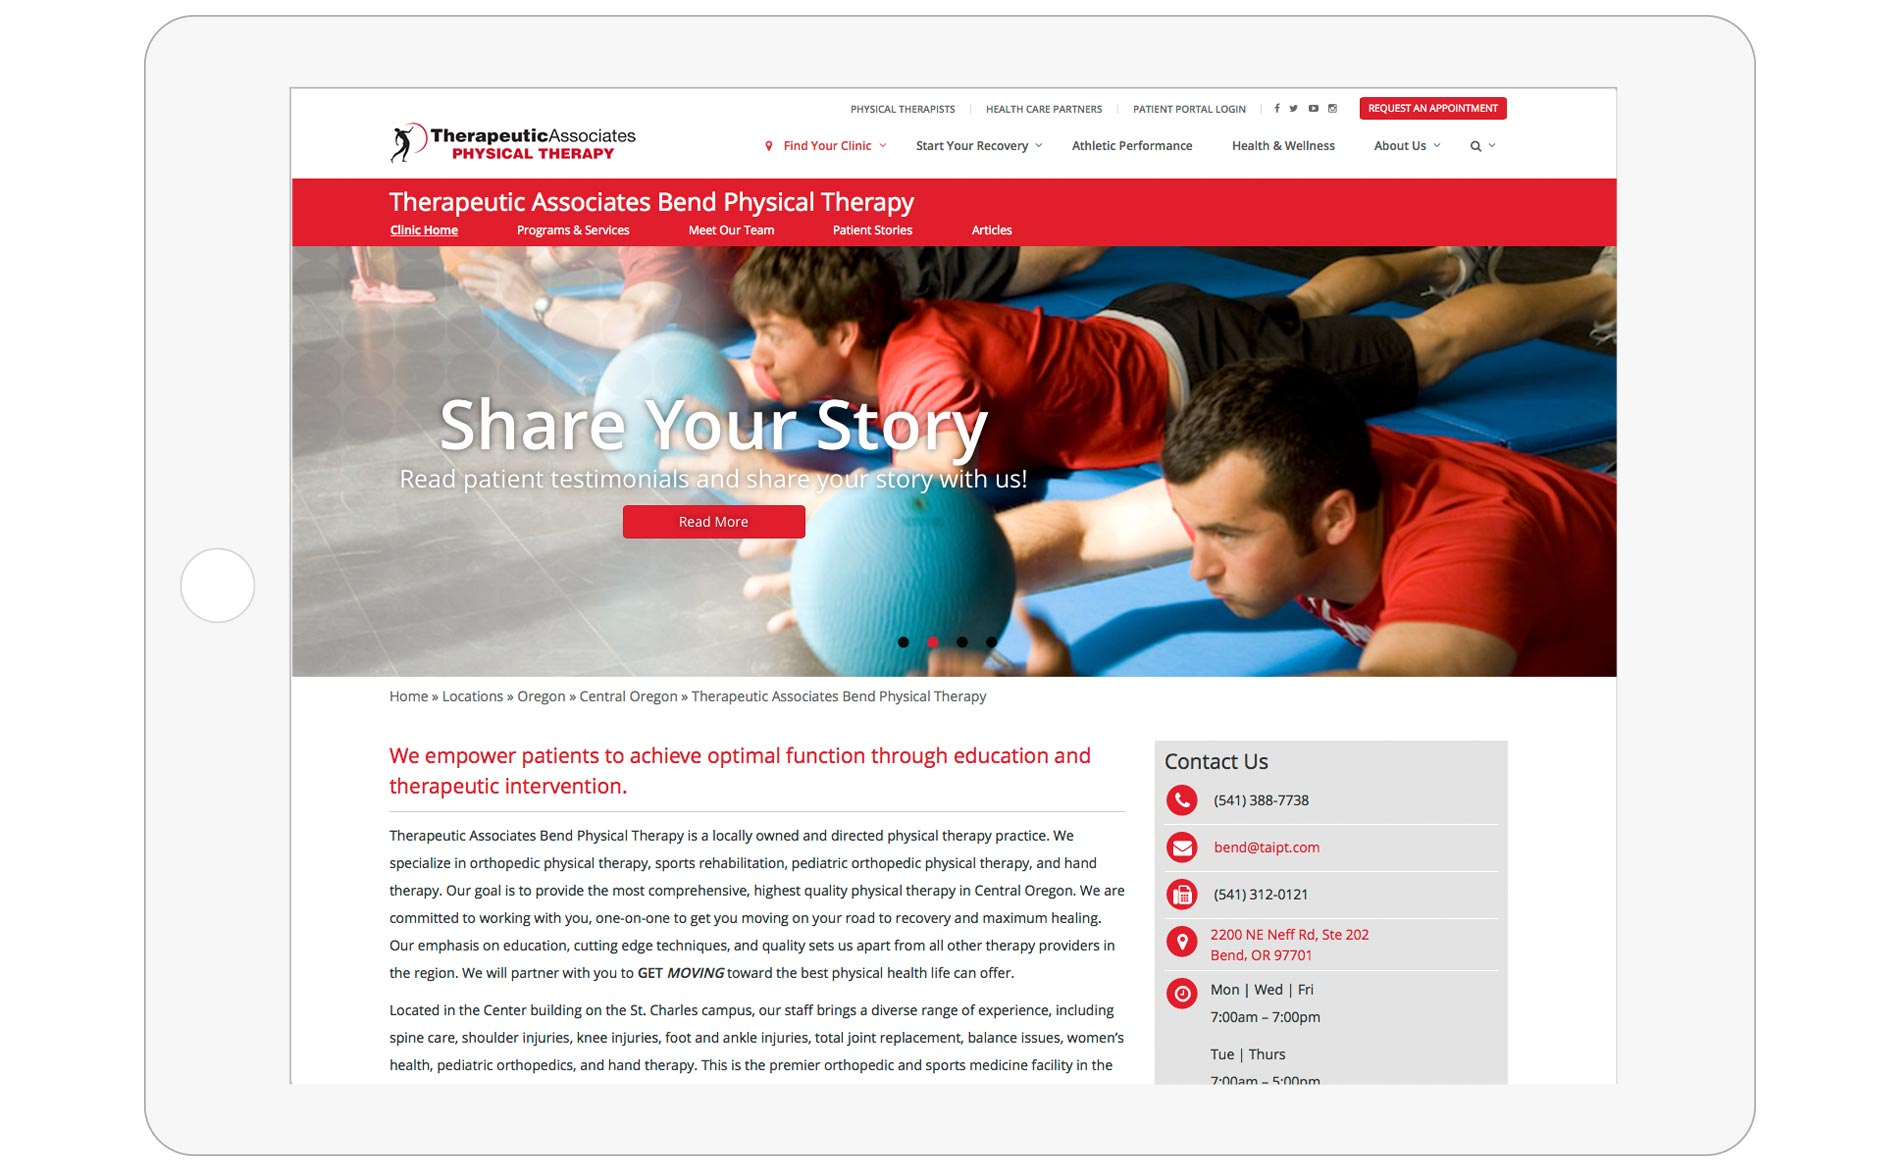 Therapeutic Associates Website Redesign - Clinic Page